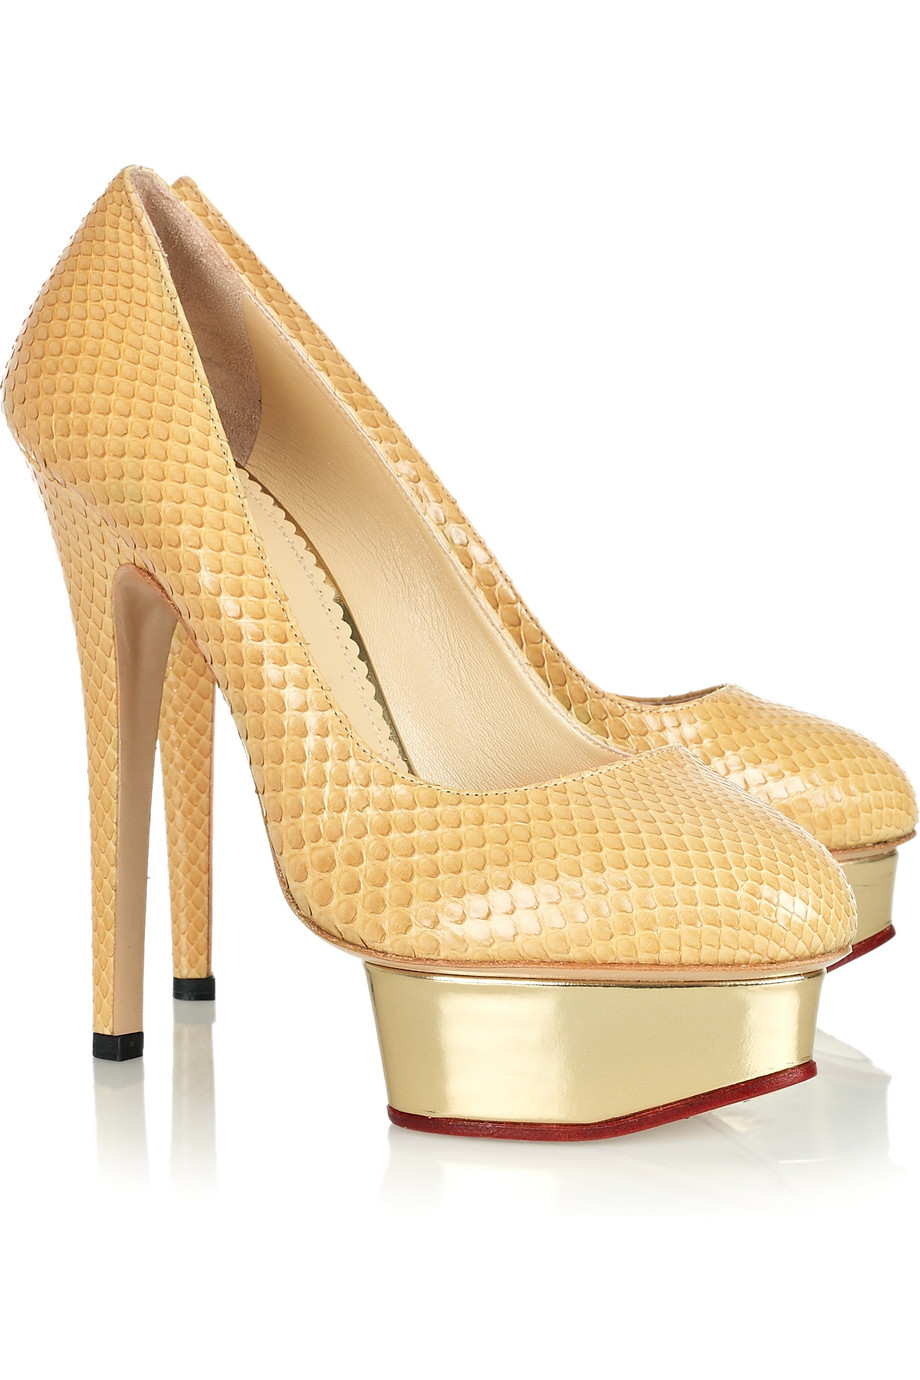 Clearance Many Kinds Of Cheap Sale Ebay Pre-owned - SNAKESKIN PUMPS Charlotte Olympia Recommend For Sale CFrPOK2